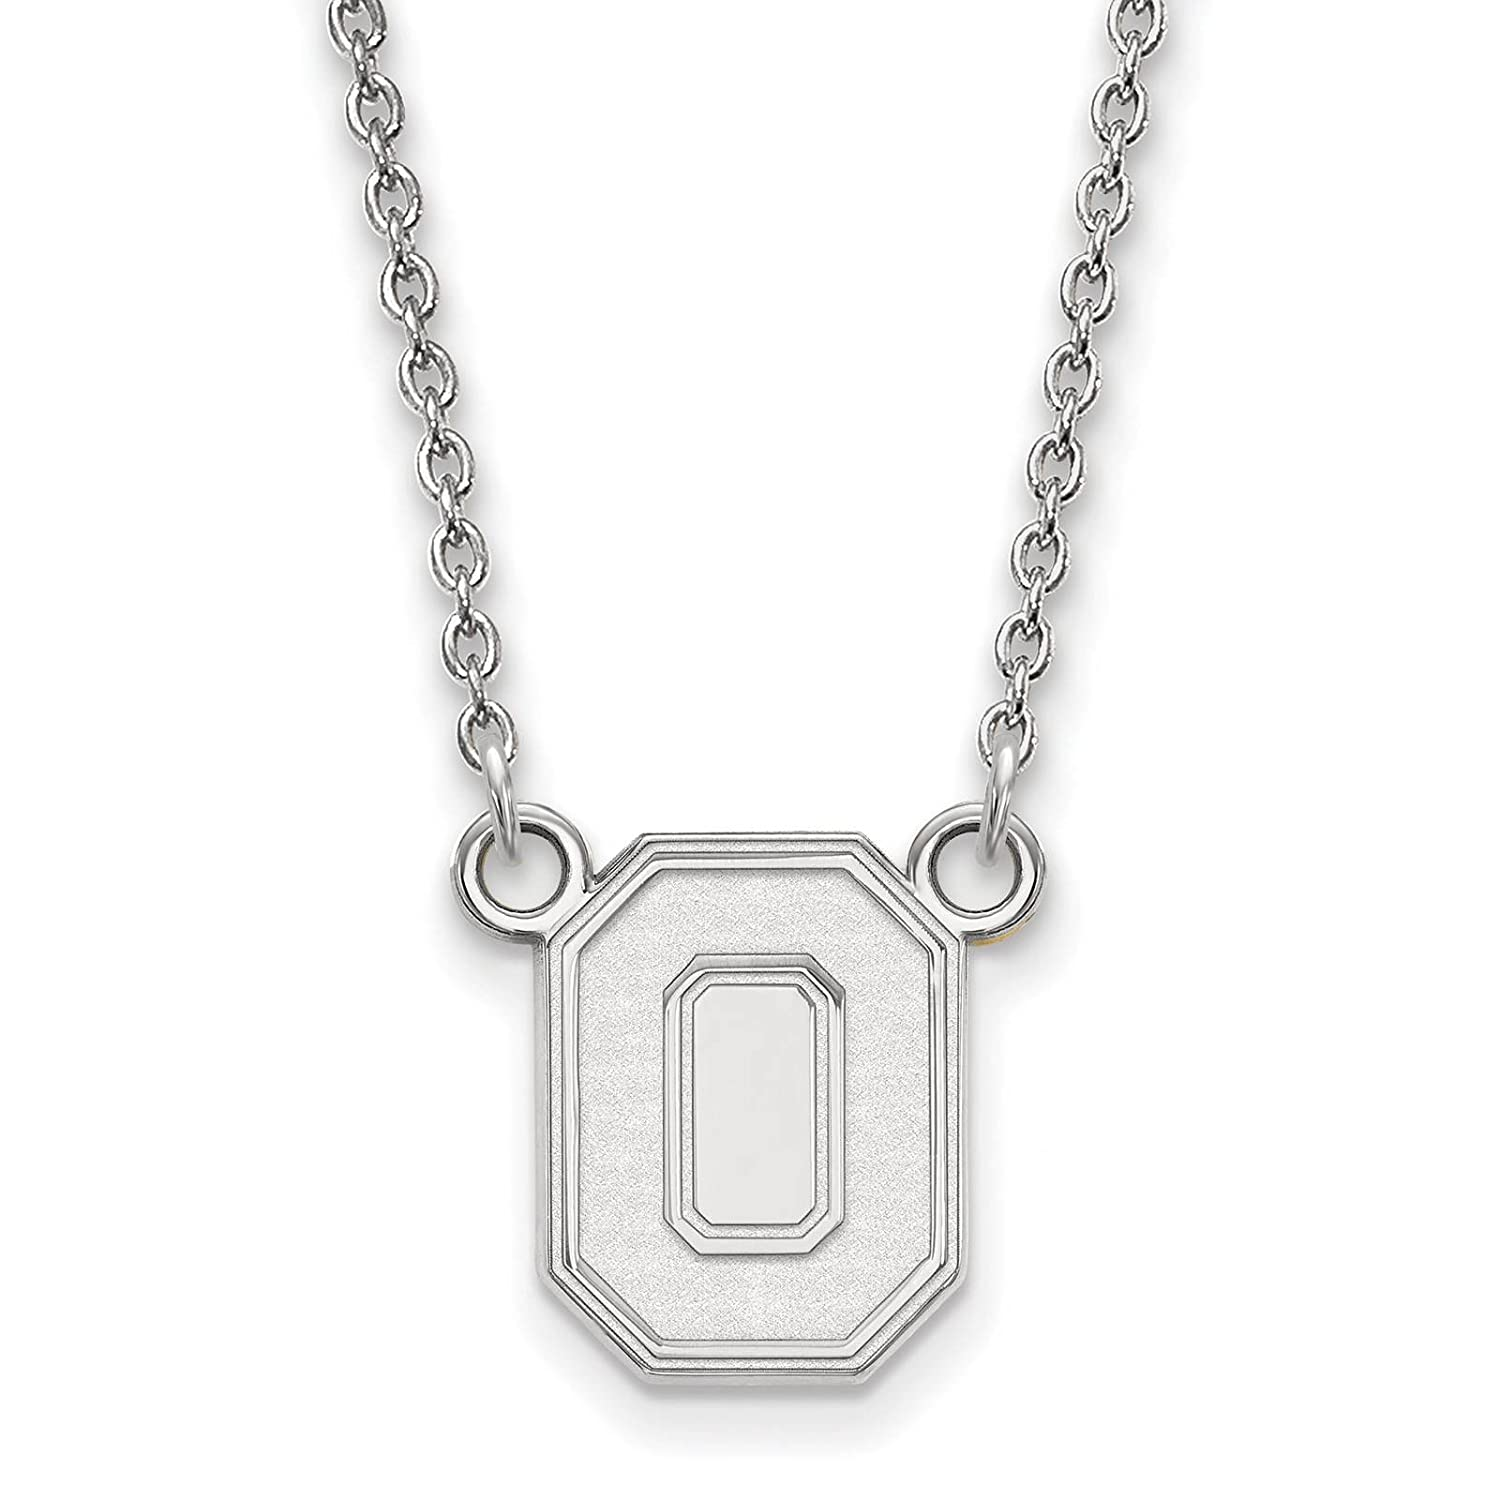 925 Sterling Silver Rhodium-plated Laser-cut Ohio State University Small Pendant w//Necklace 18